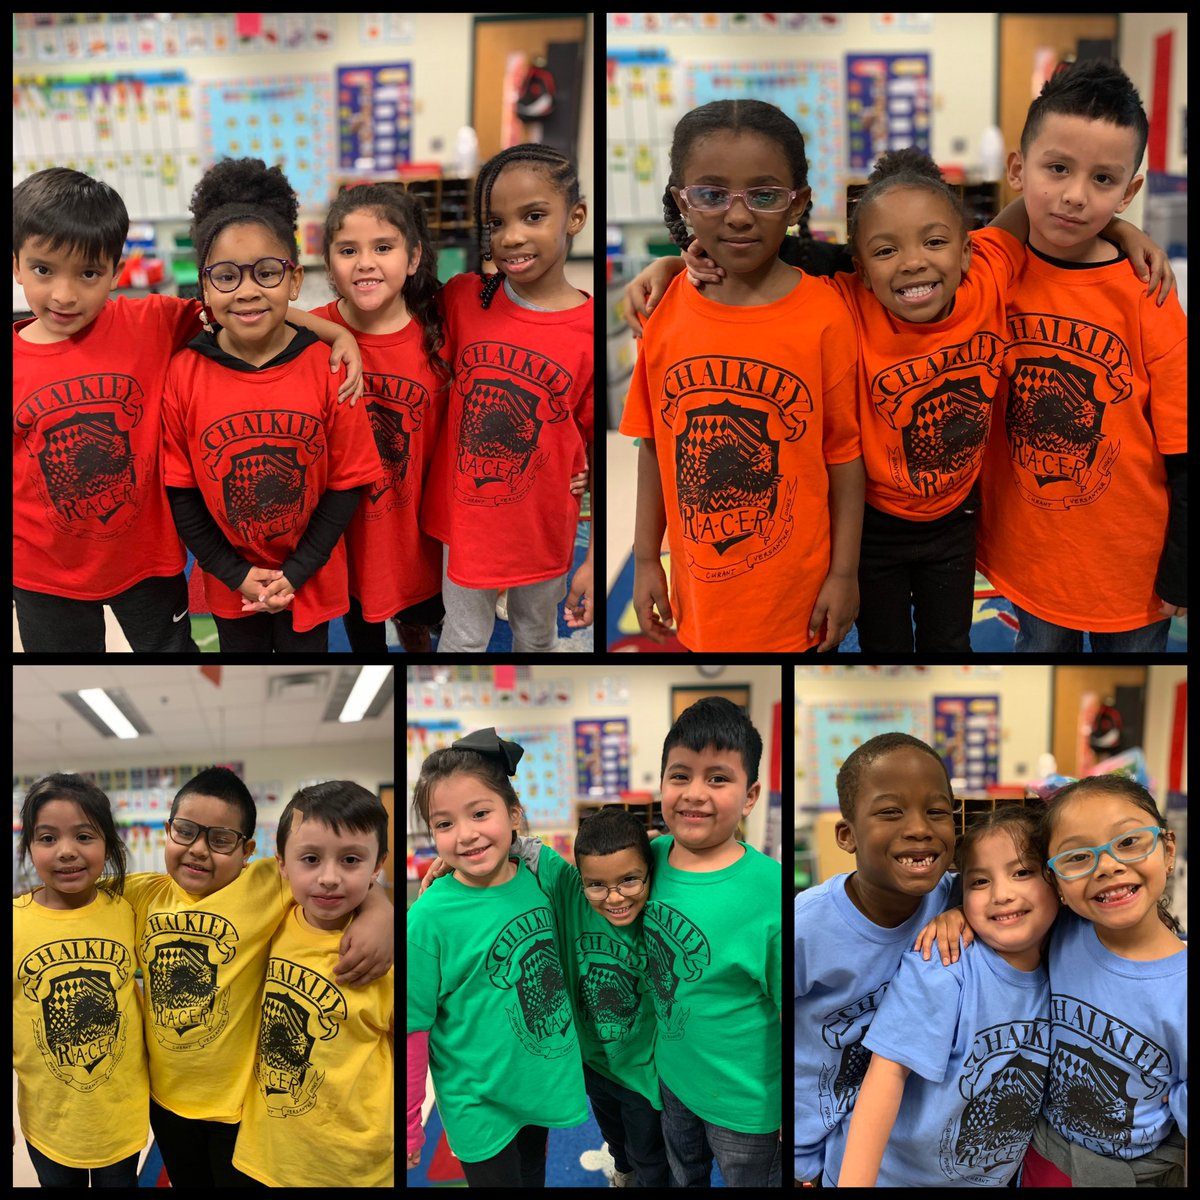 The kids were so excited to rock their new house shirts today!!! #werunasOne #jacksonspack